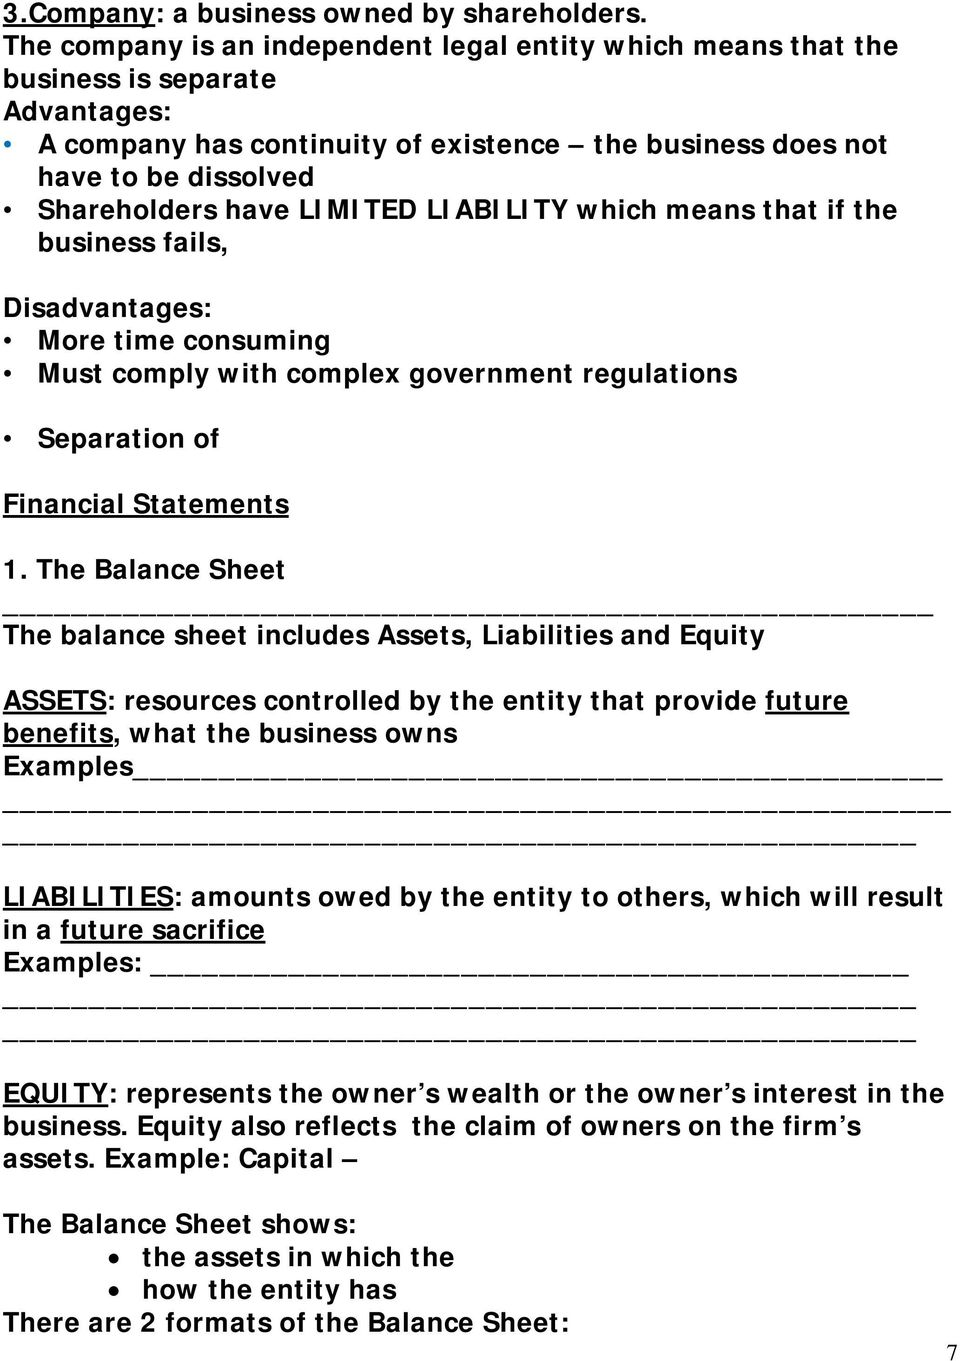 LIMITED LIABILITY which means that if the business fails, Disadvantages: More time consuming Must comply with complex government regulations Separation of Financial Statements 1.